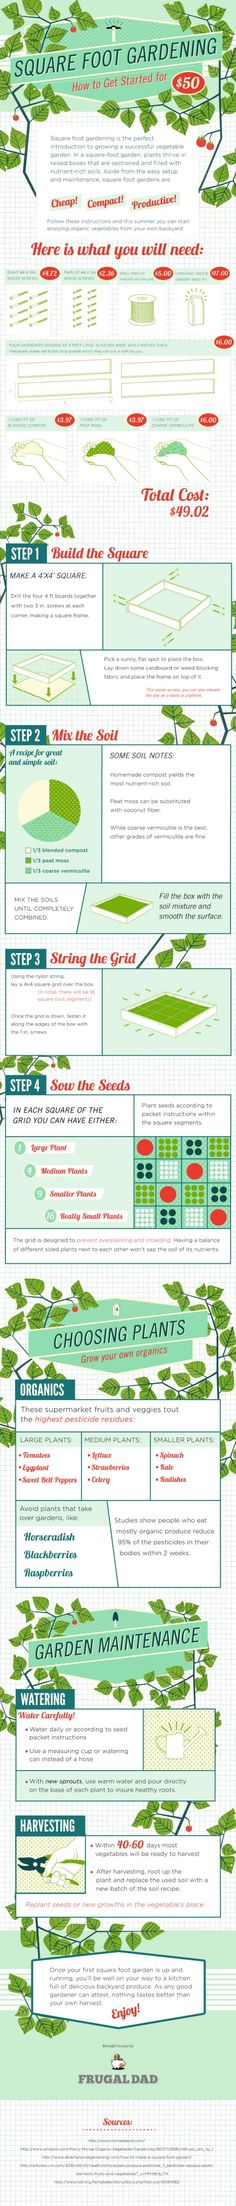 My 2008 post,How to Build a Square Foot Garden, was a big hit with other first time gardeners. Since spring is really just kicking into gear, I thought we'd revisit the square foot garden with a graphical step by step. Along with updated materials and construction diagrams, we've also added a plant list, extra tips, and some new options to try out. What's great about square foot gardens is that they are such a warm and easy introduction to growing your own food. Here's hoping our graphic…